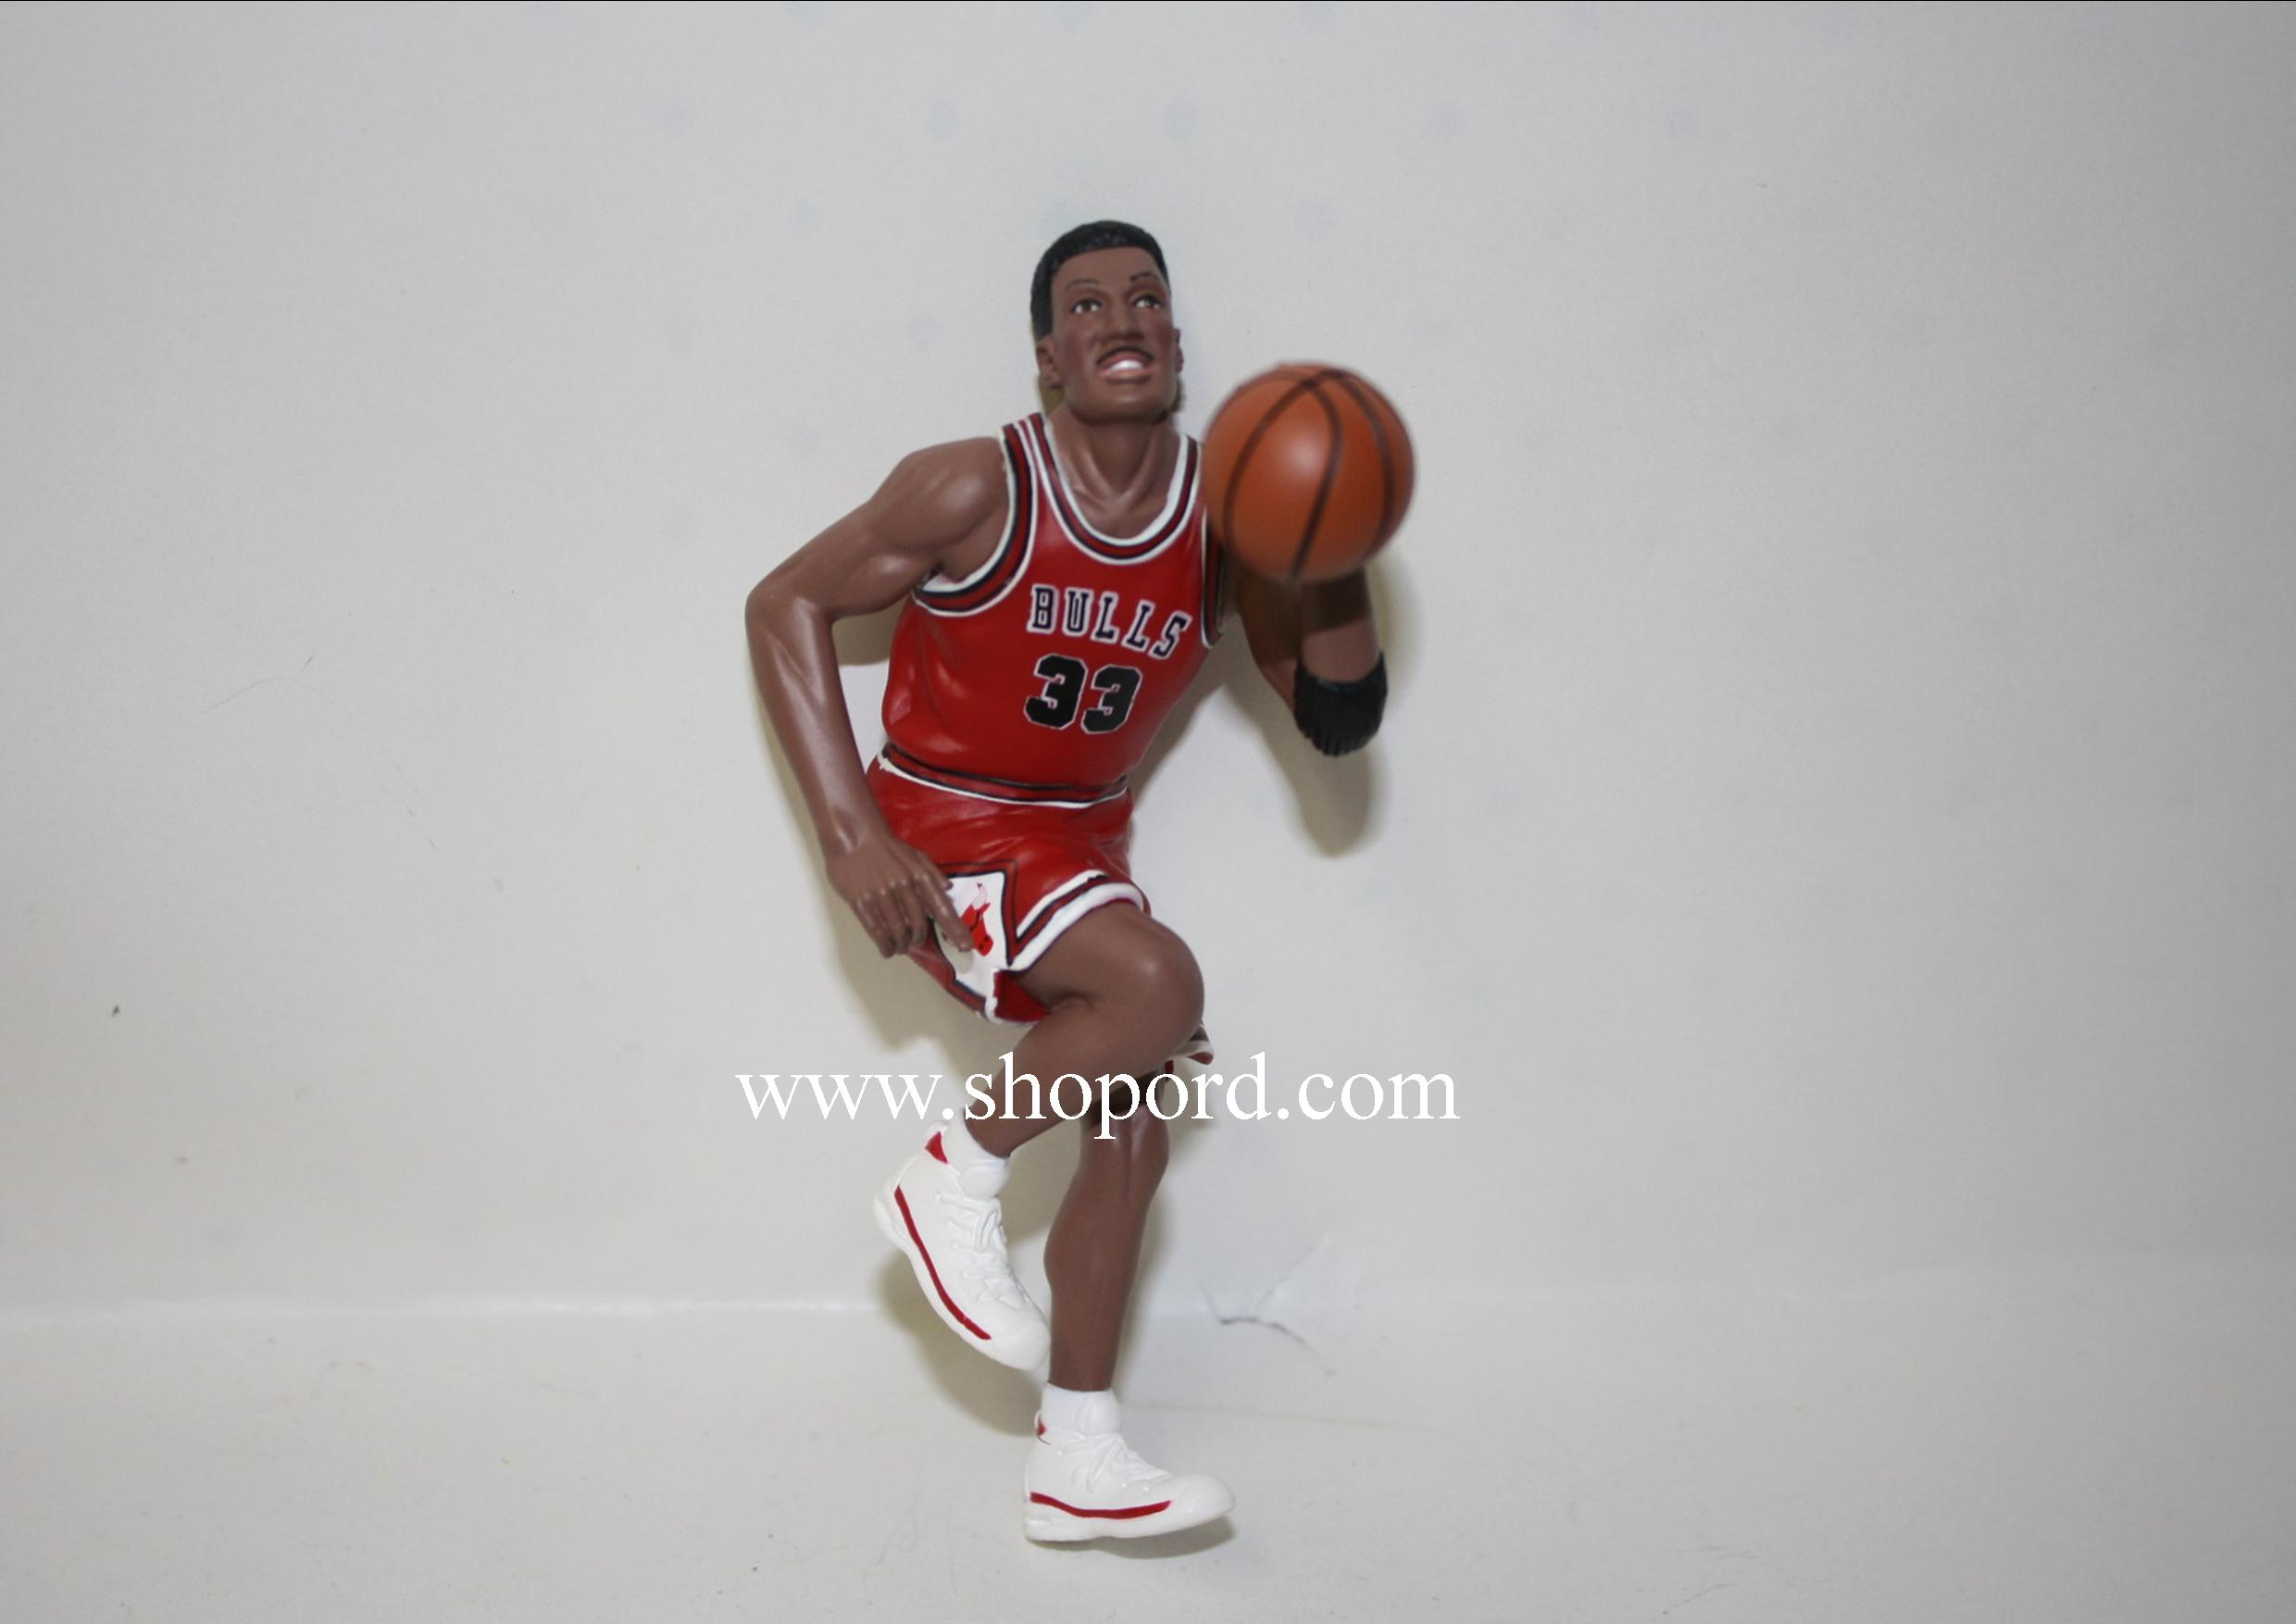 Hallmark 1999 Scottie Pippen Ornament 5th In The Hoop Stars Series QXI4177 No Box